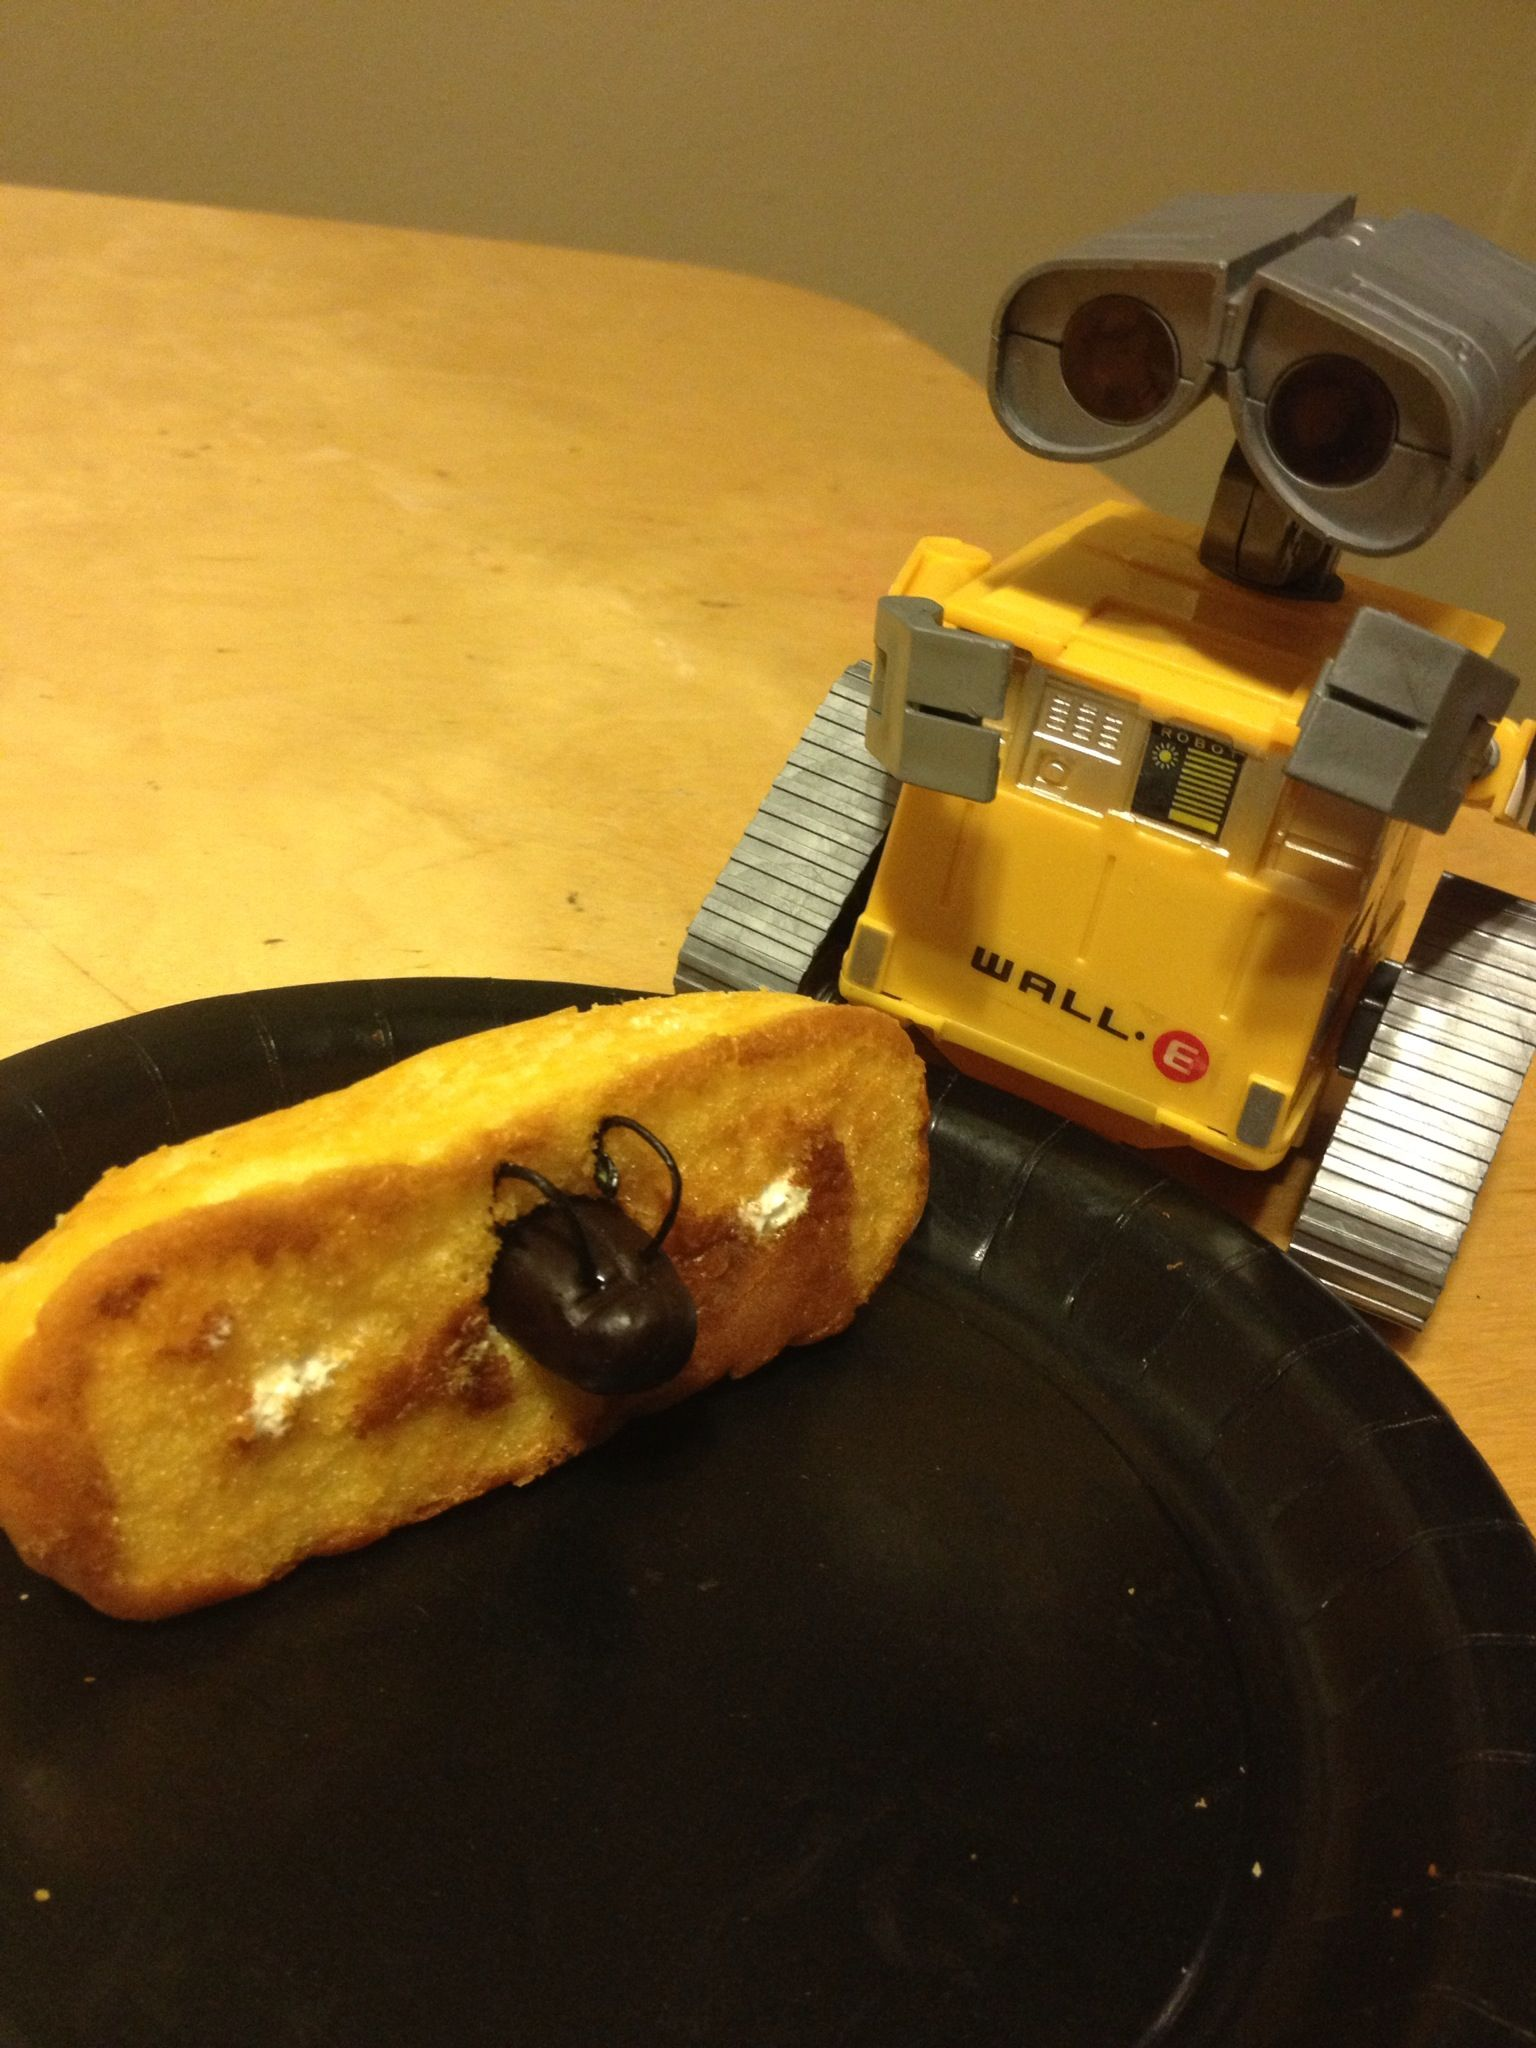 Image result for wall-e twinkie